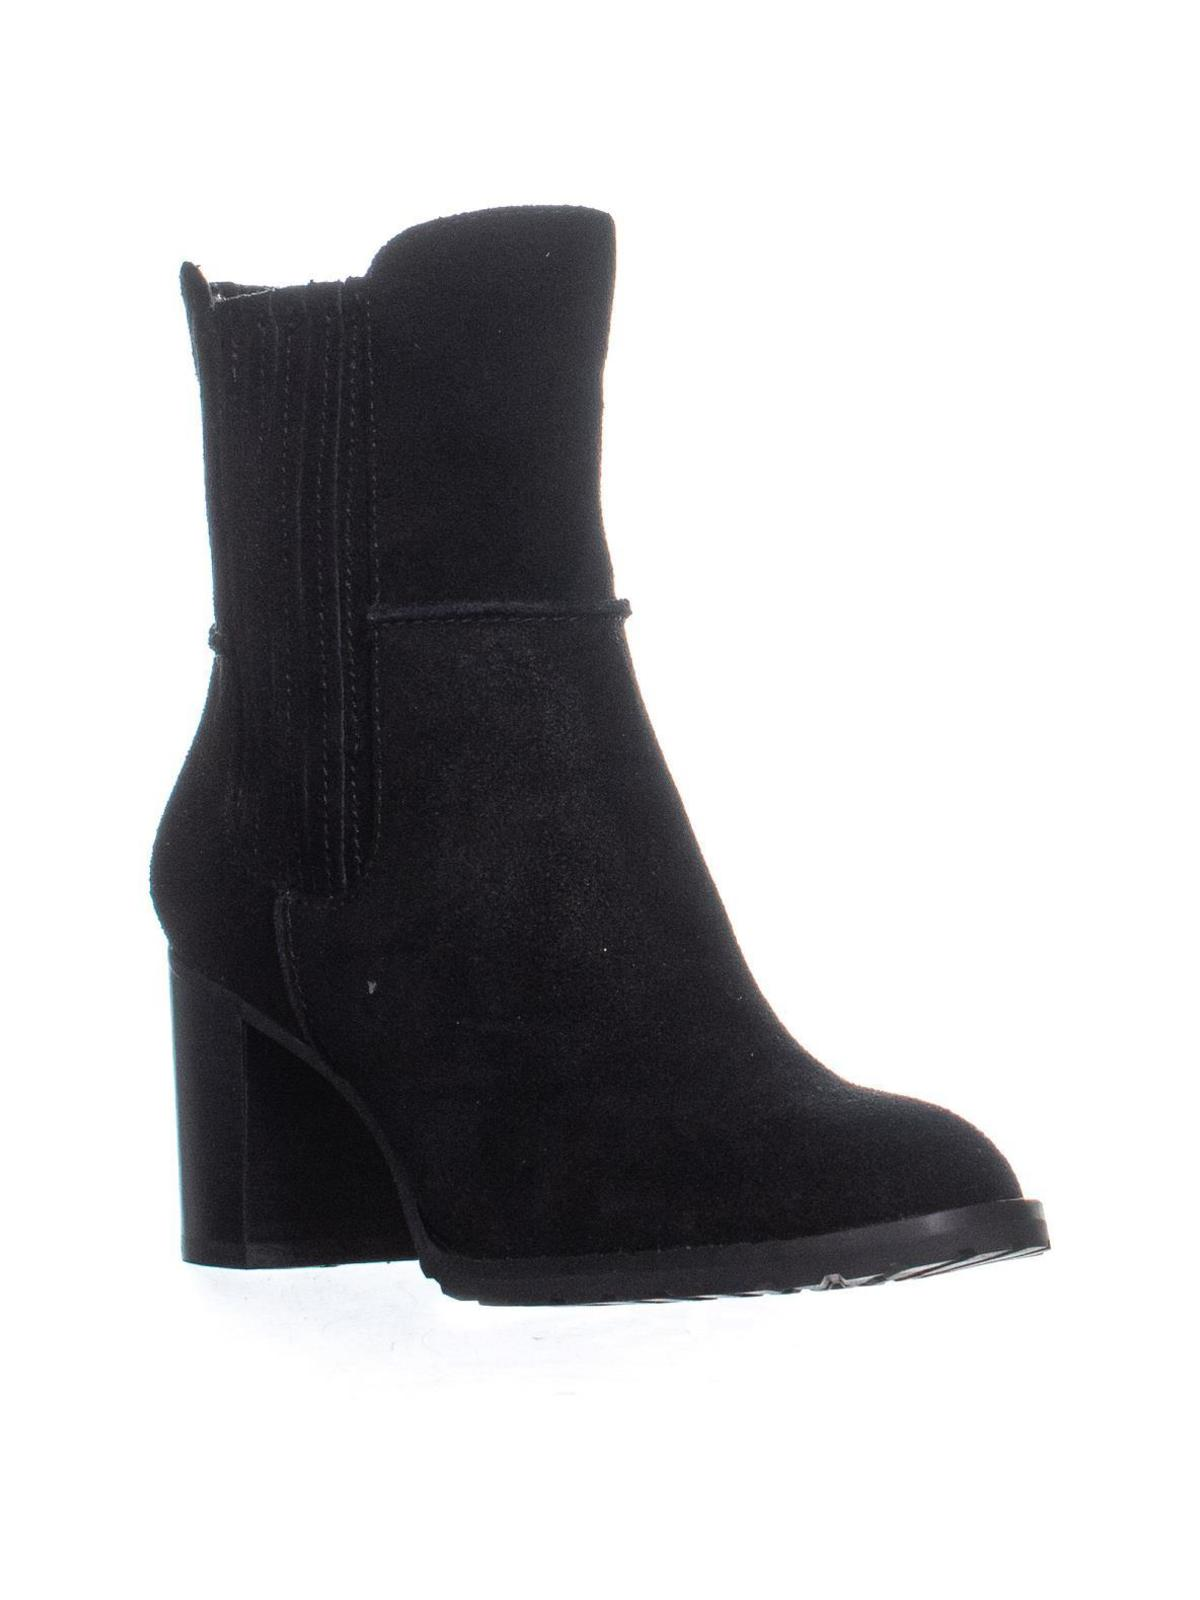 mod black suede booties black ankle boots Charles David button ankle boots